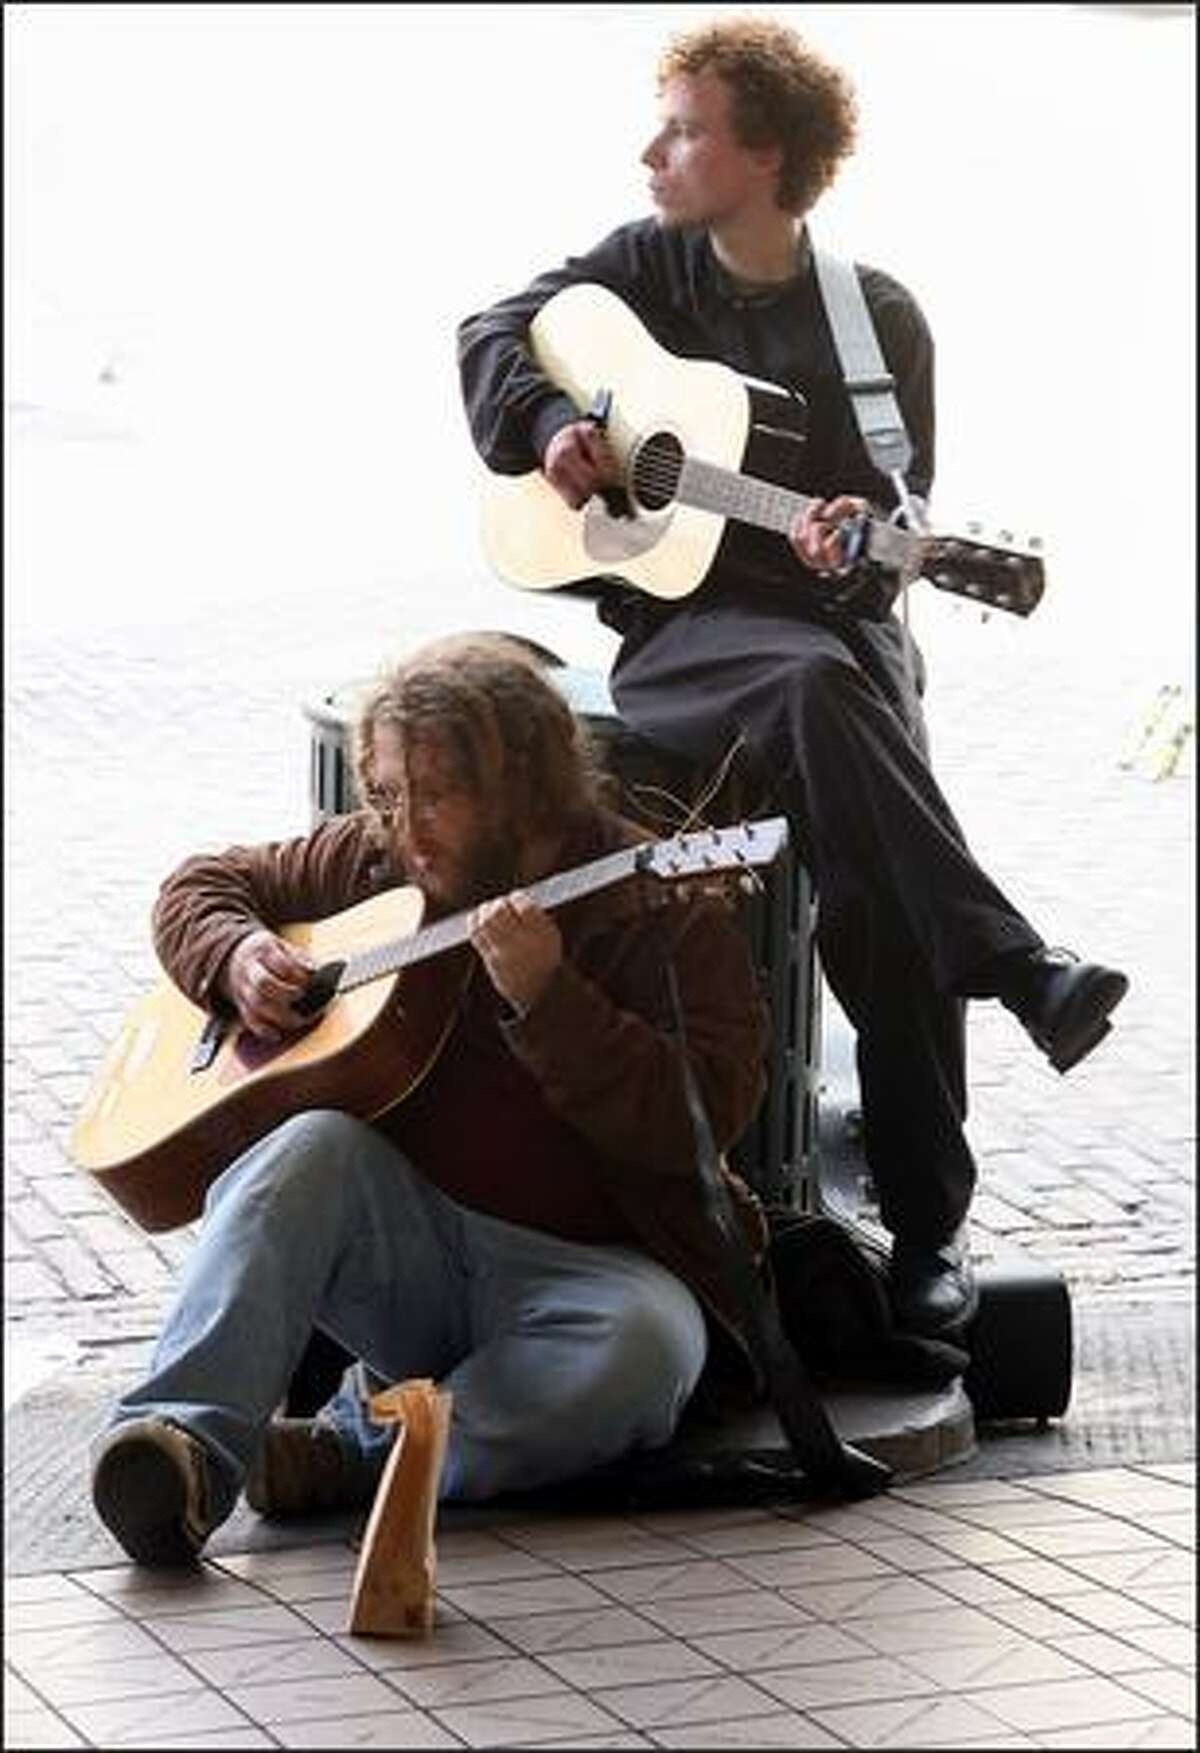 Street musicians Tommy Dean and Kind Kieth perfom at the Pike Place Market.